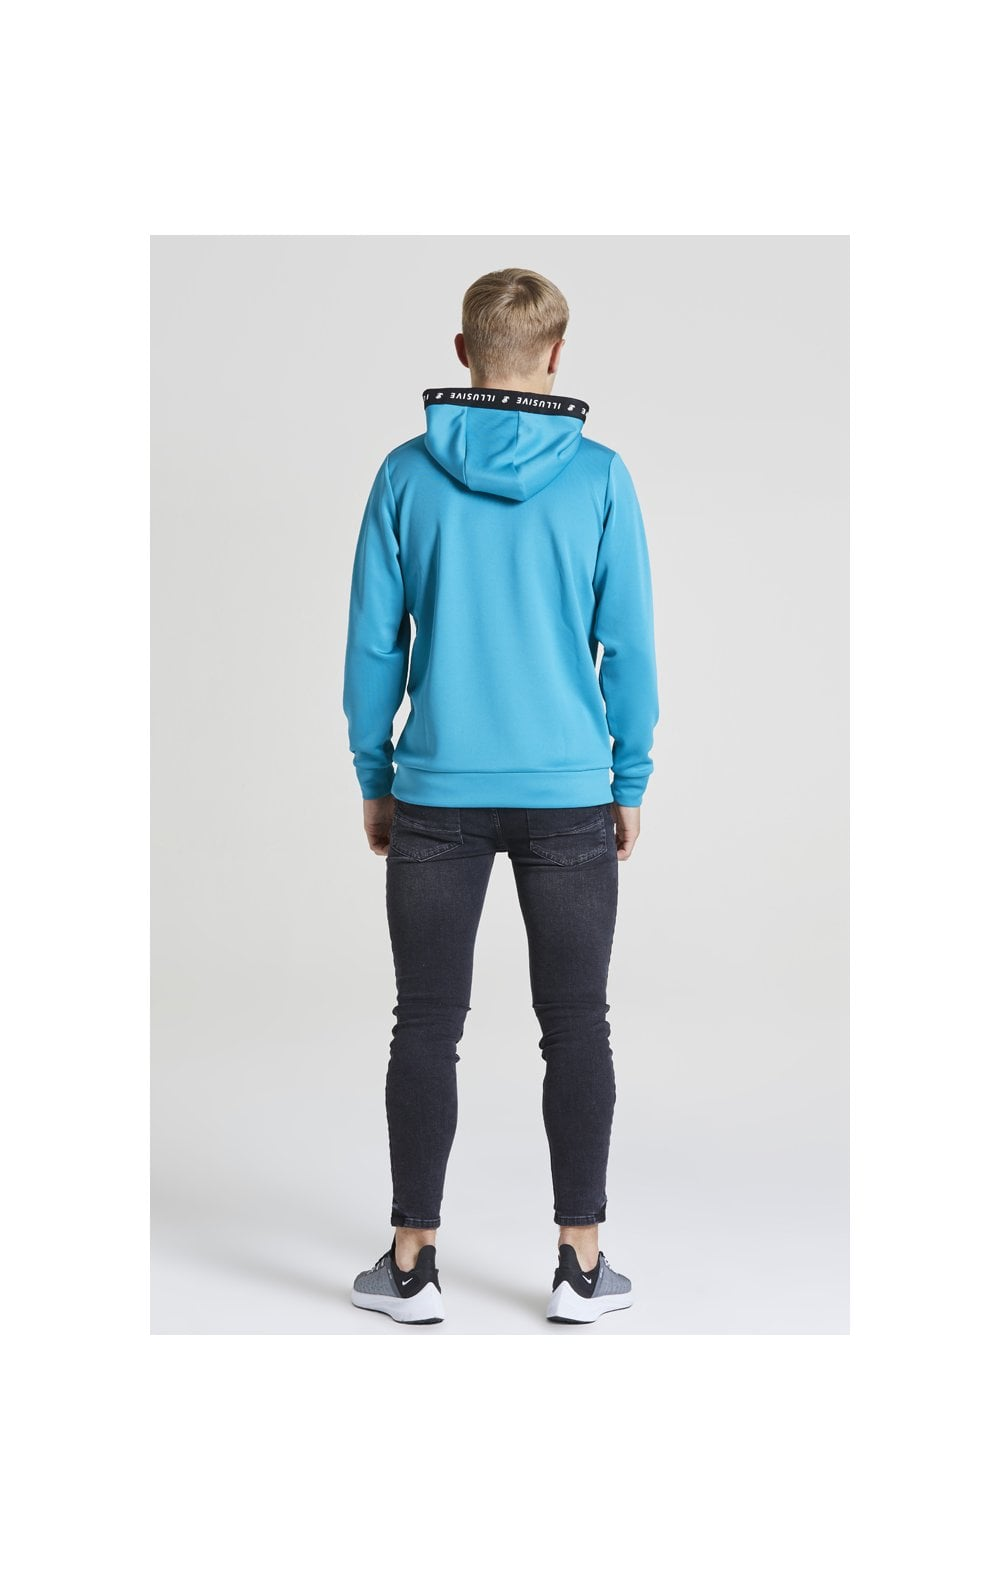 Illusive London Taped Overhead Hoodie - Teal Green (6)